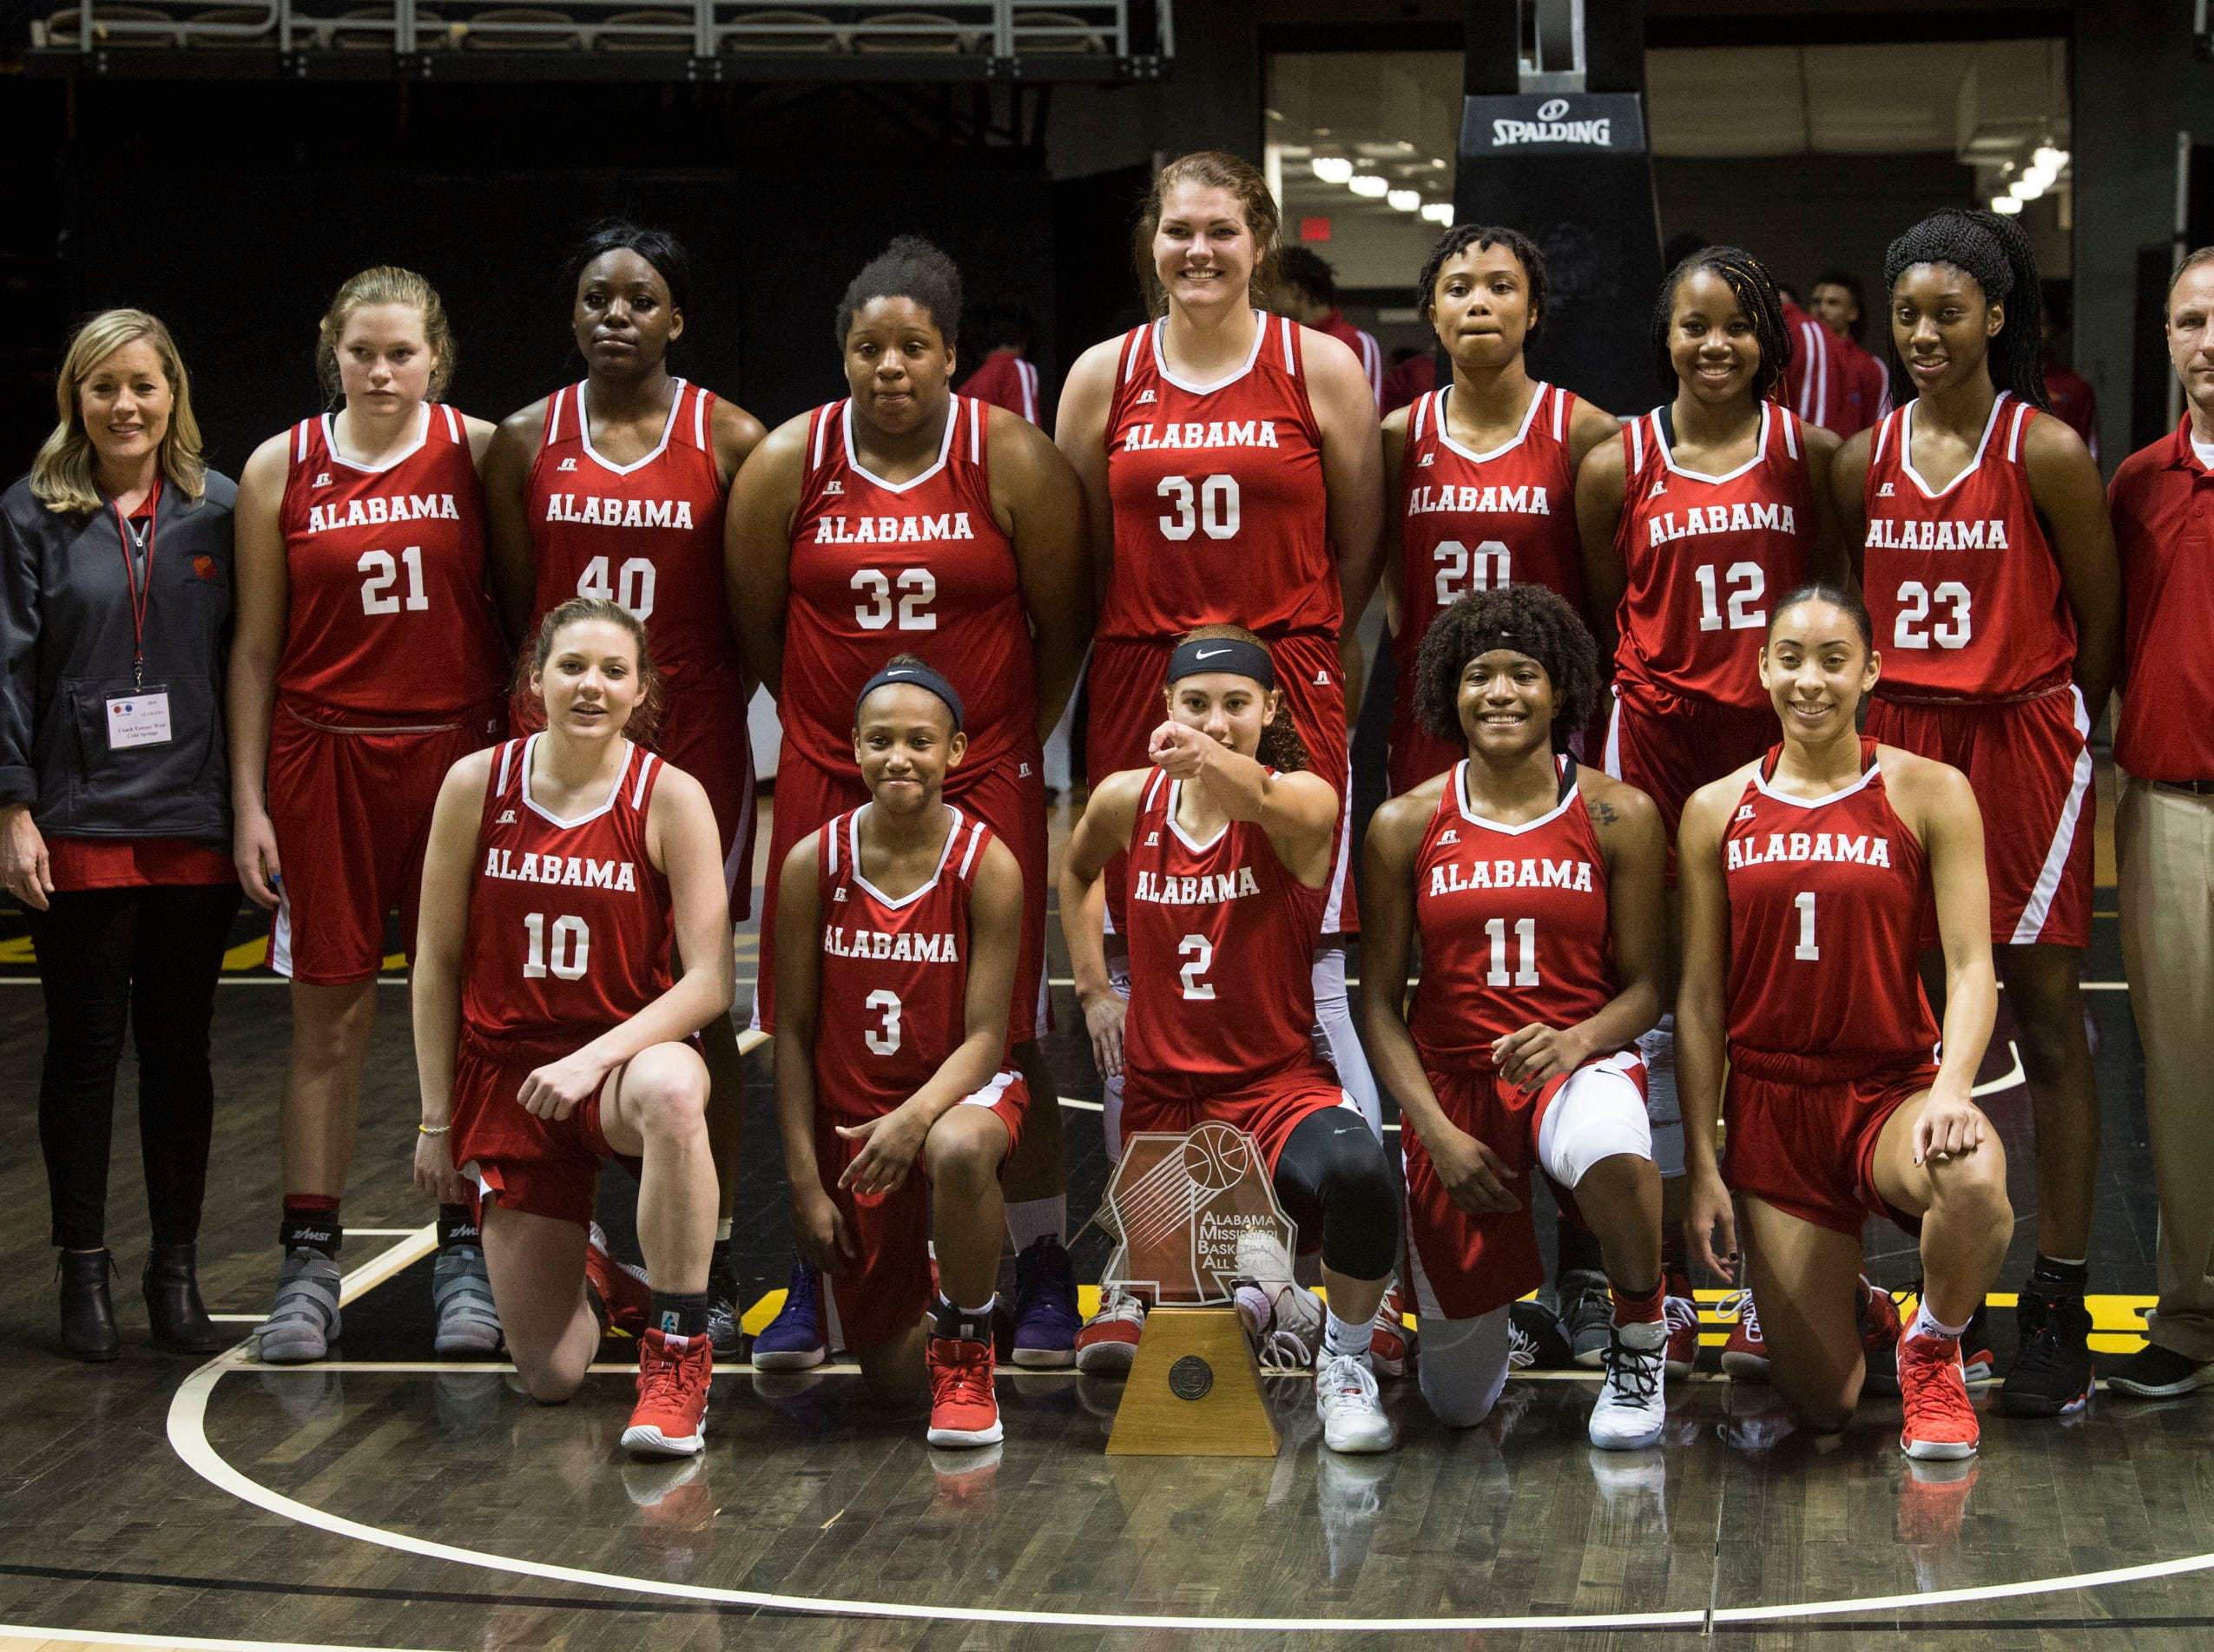 Alabama All-Star team poses with the trophy during the Alabama-Mississippi All-Star game at the Dunn-Oliver Acadome in Montgomery, Ala., on Friday, March 15, 2019. Alabama All-stars defeated the Mississippi All-stars 101-82.